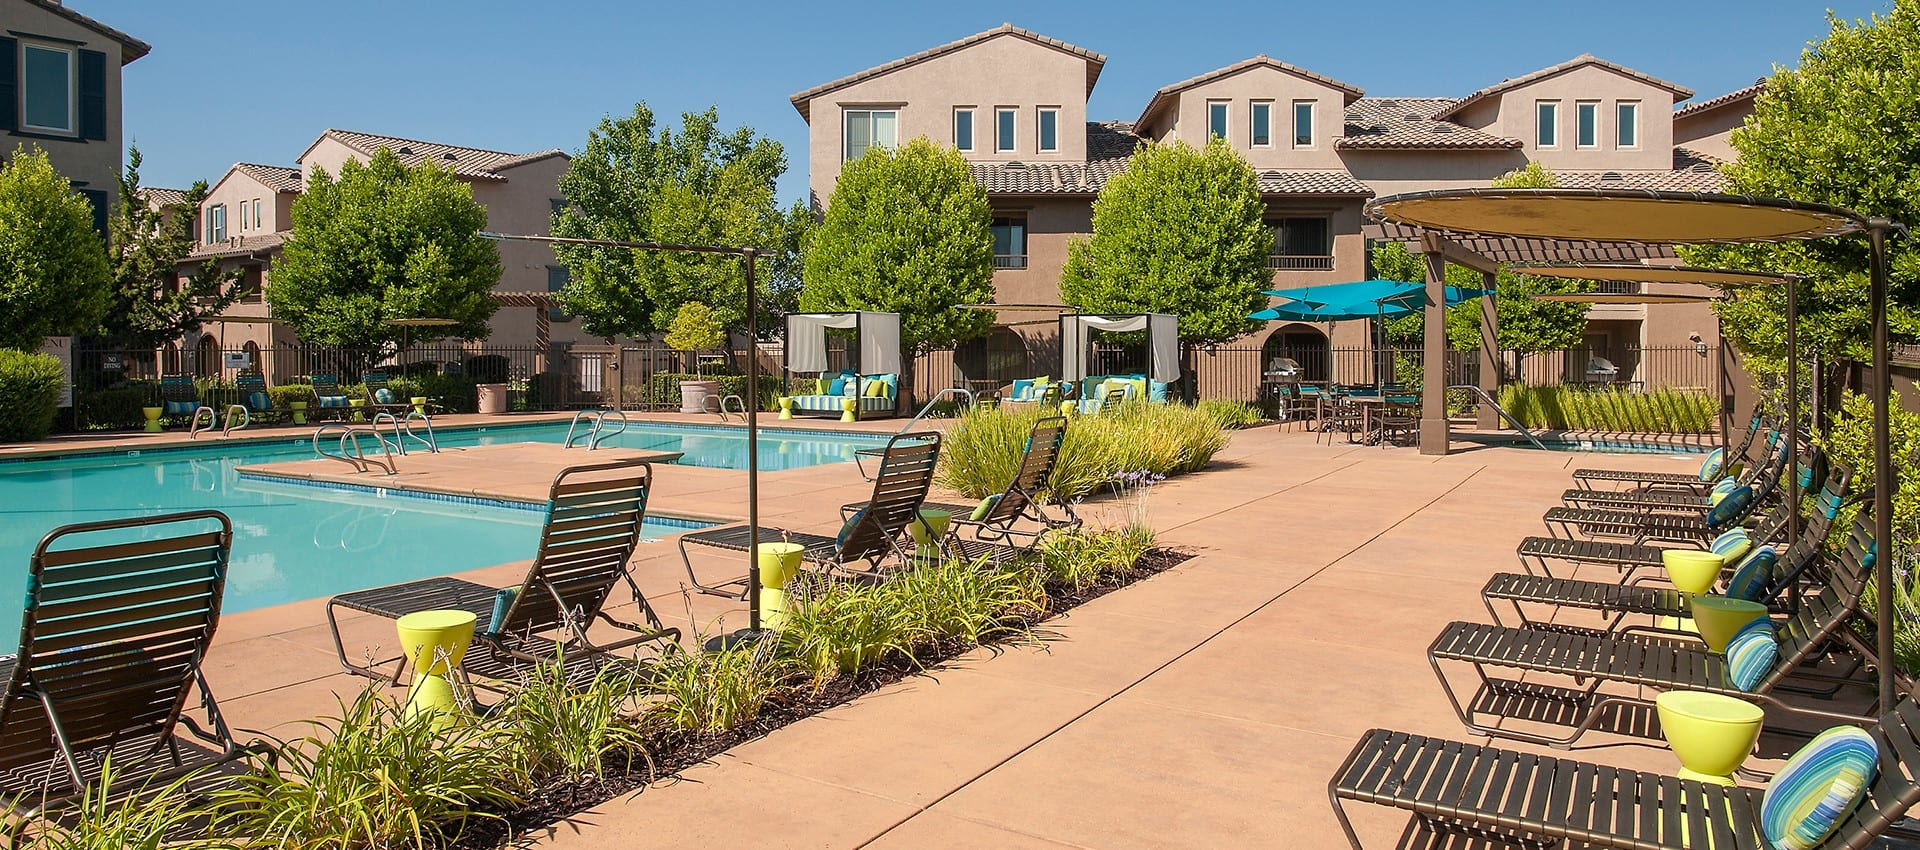 Sun deck next to the swimming pool at Venu at Galleria Condominium Rentals in Roseville, California